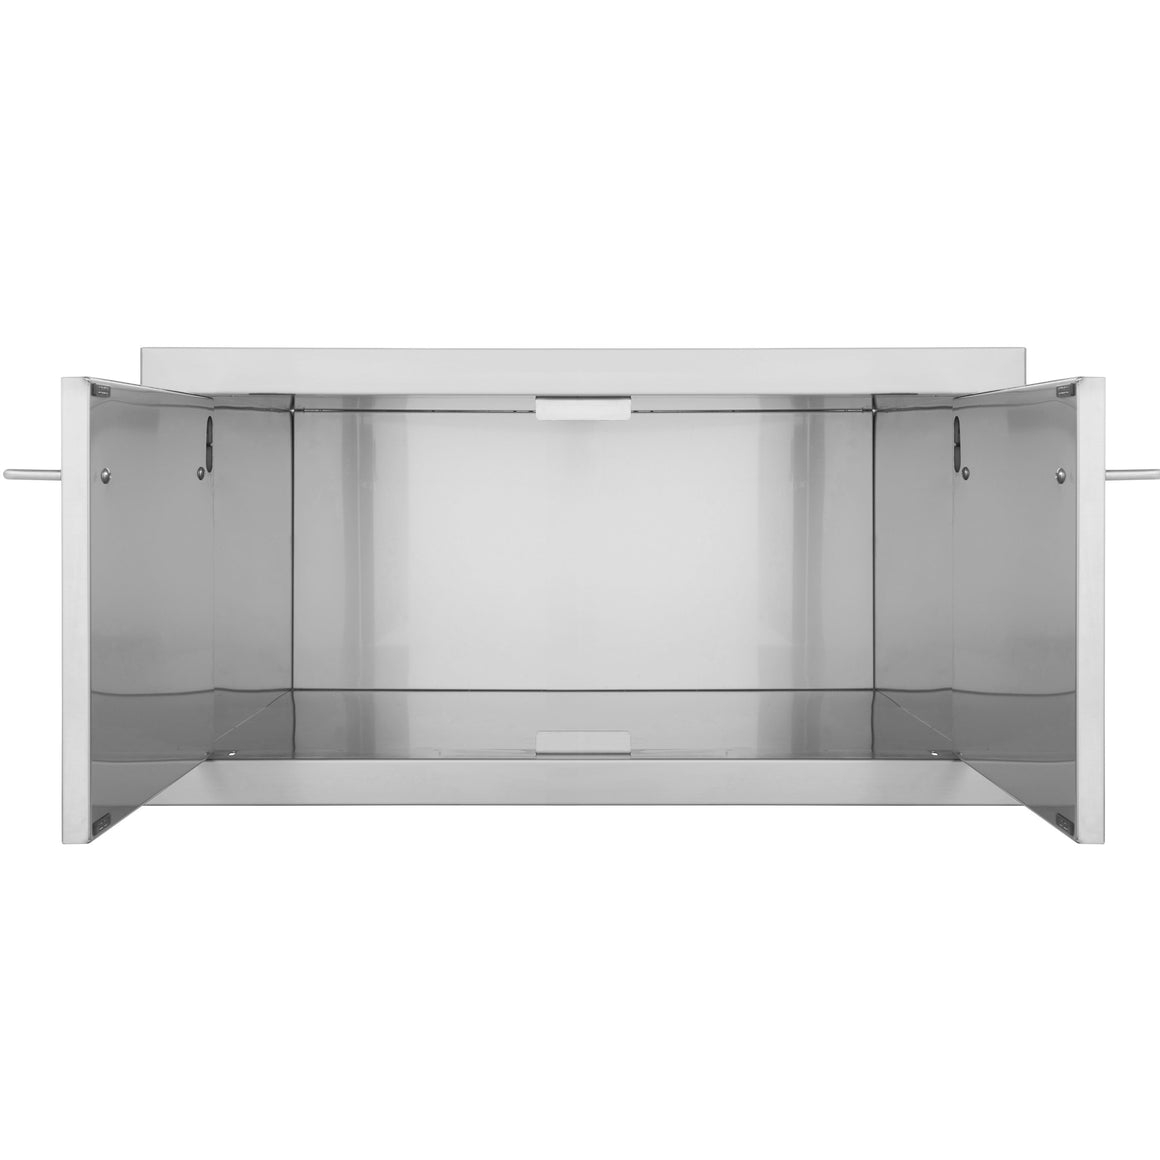 Fuego F36S 304SS Built-In Door Cabinet